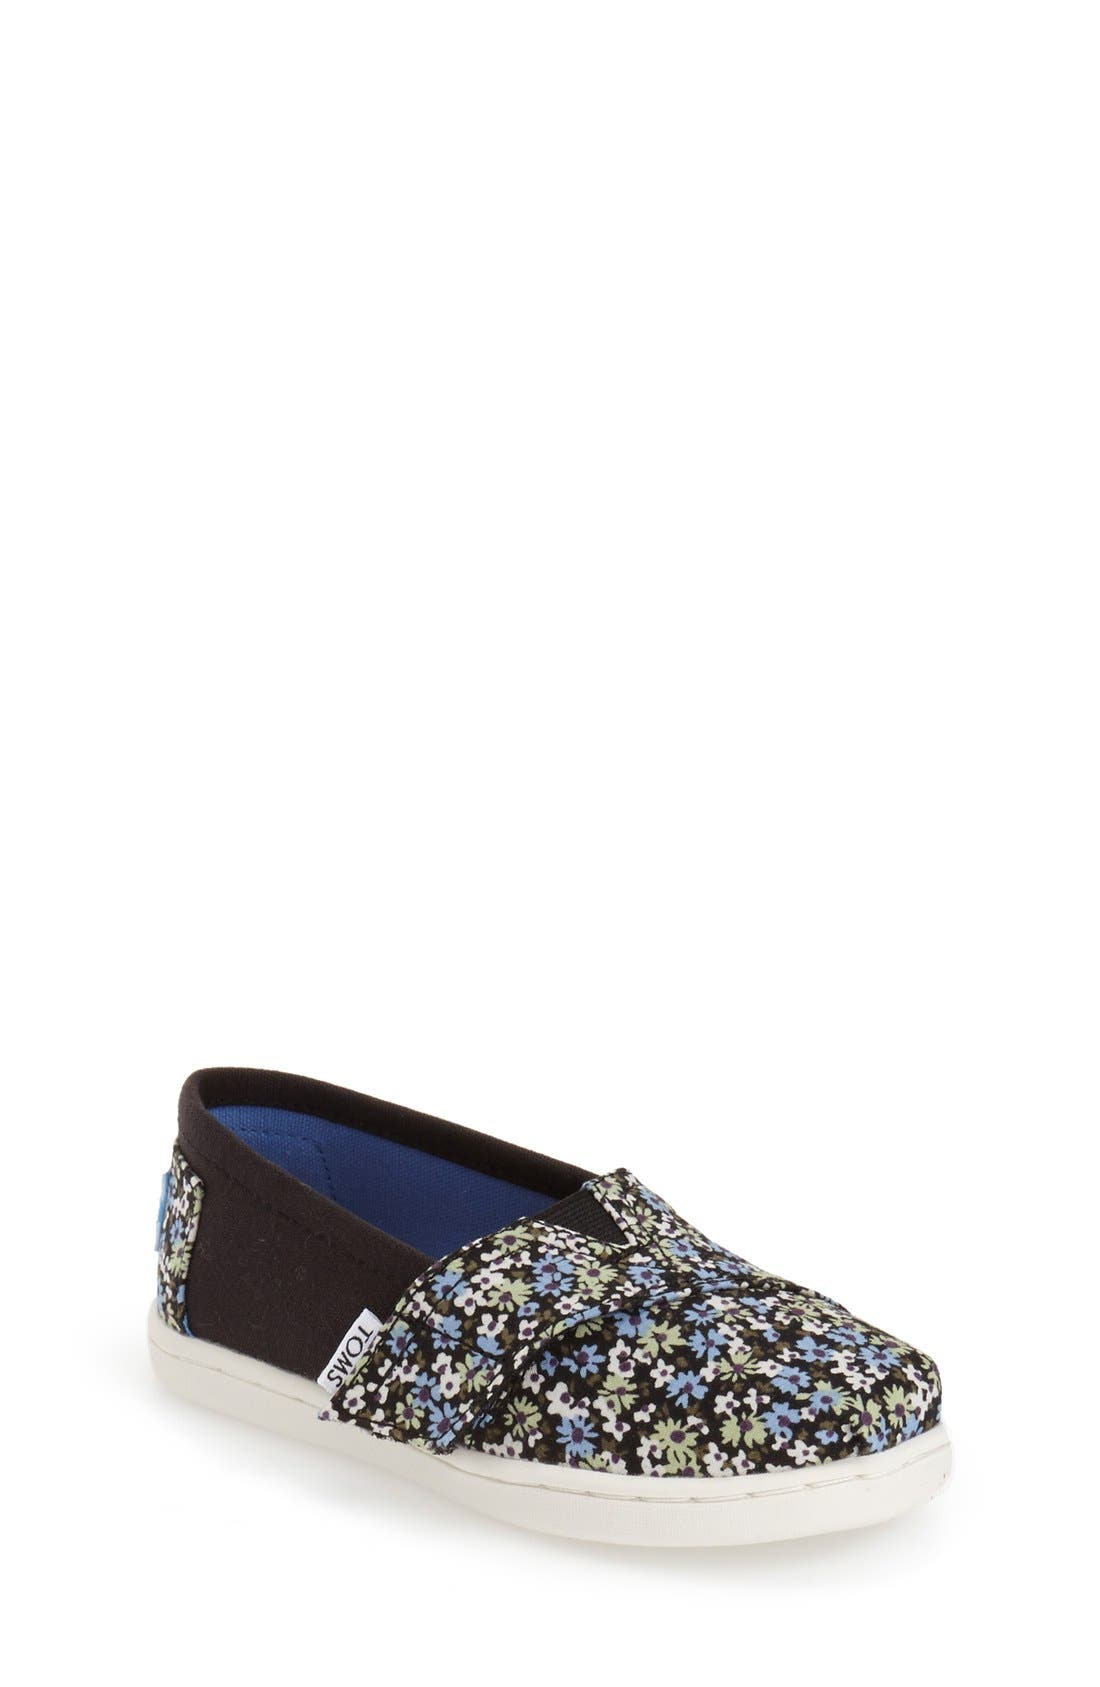 'Classic - Black Canvas Ditsy Floral' Slip-On,                             Main thumbnail 1, color,                             001